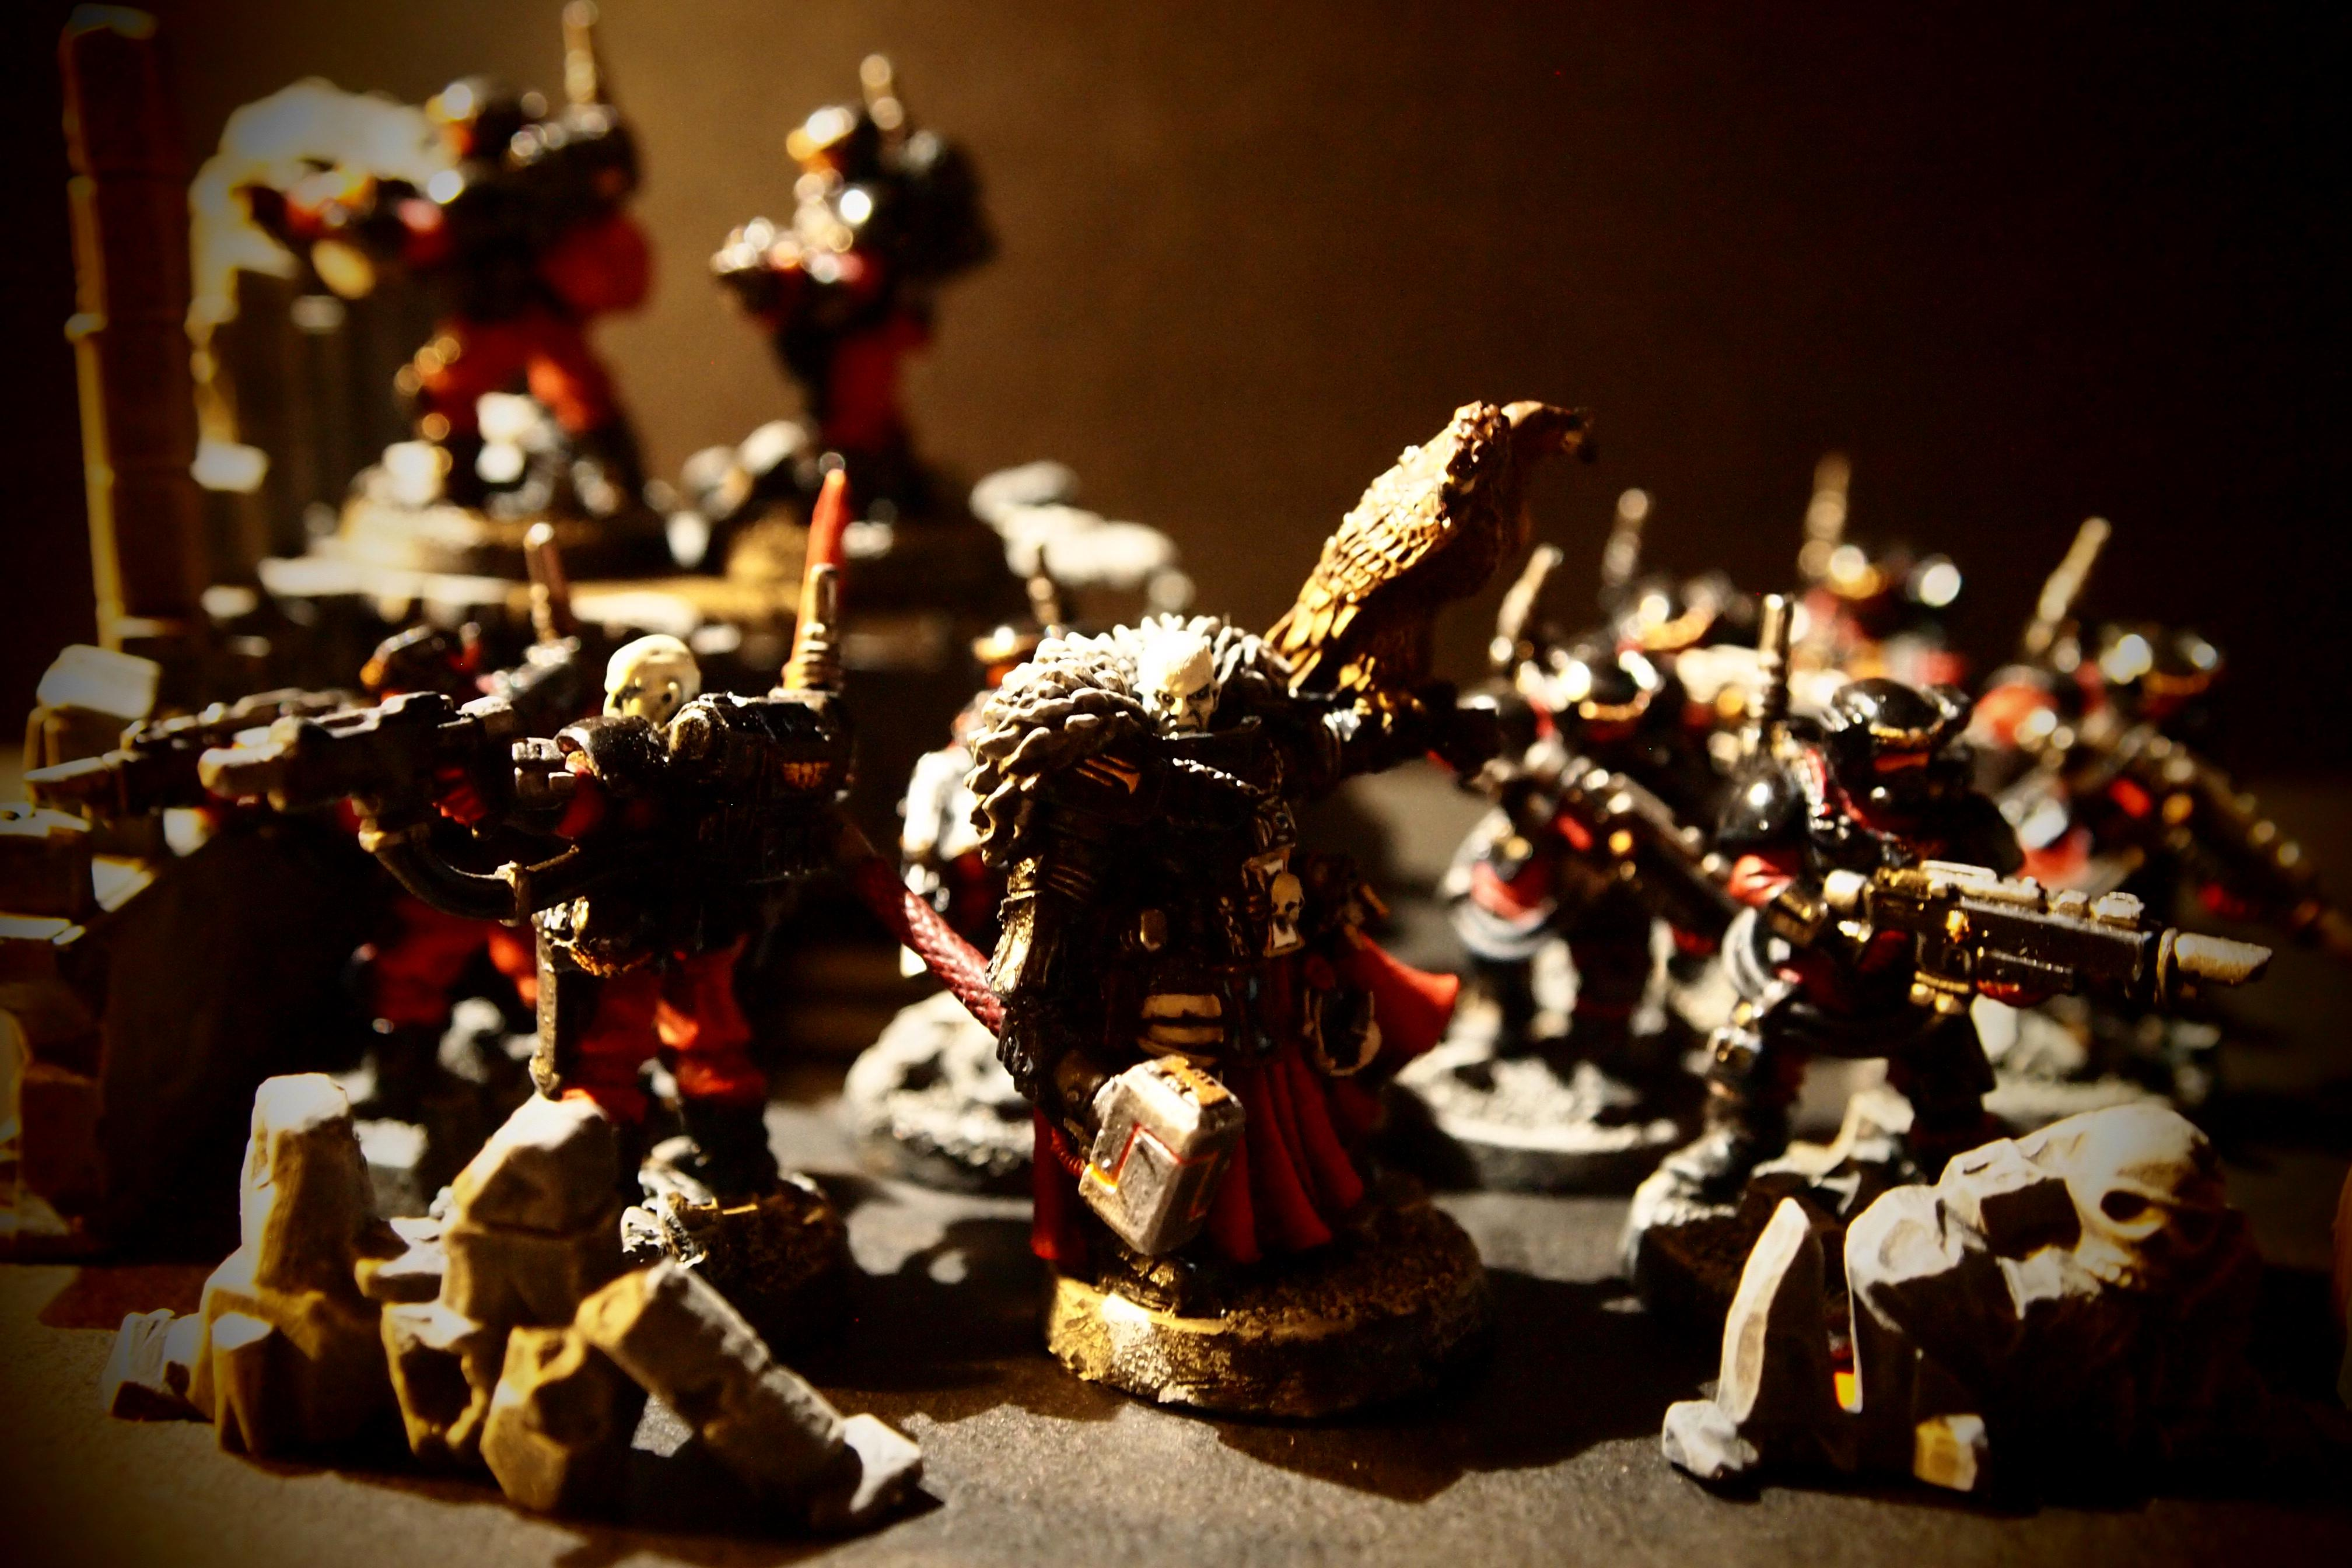 Coteaz, Inquisition, Inquisitor, Inquisitorial, Kasrkin, Storm Troopers, Warrior Acolytes